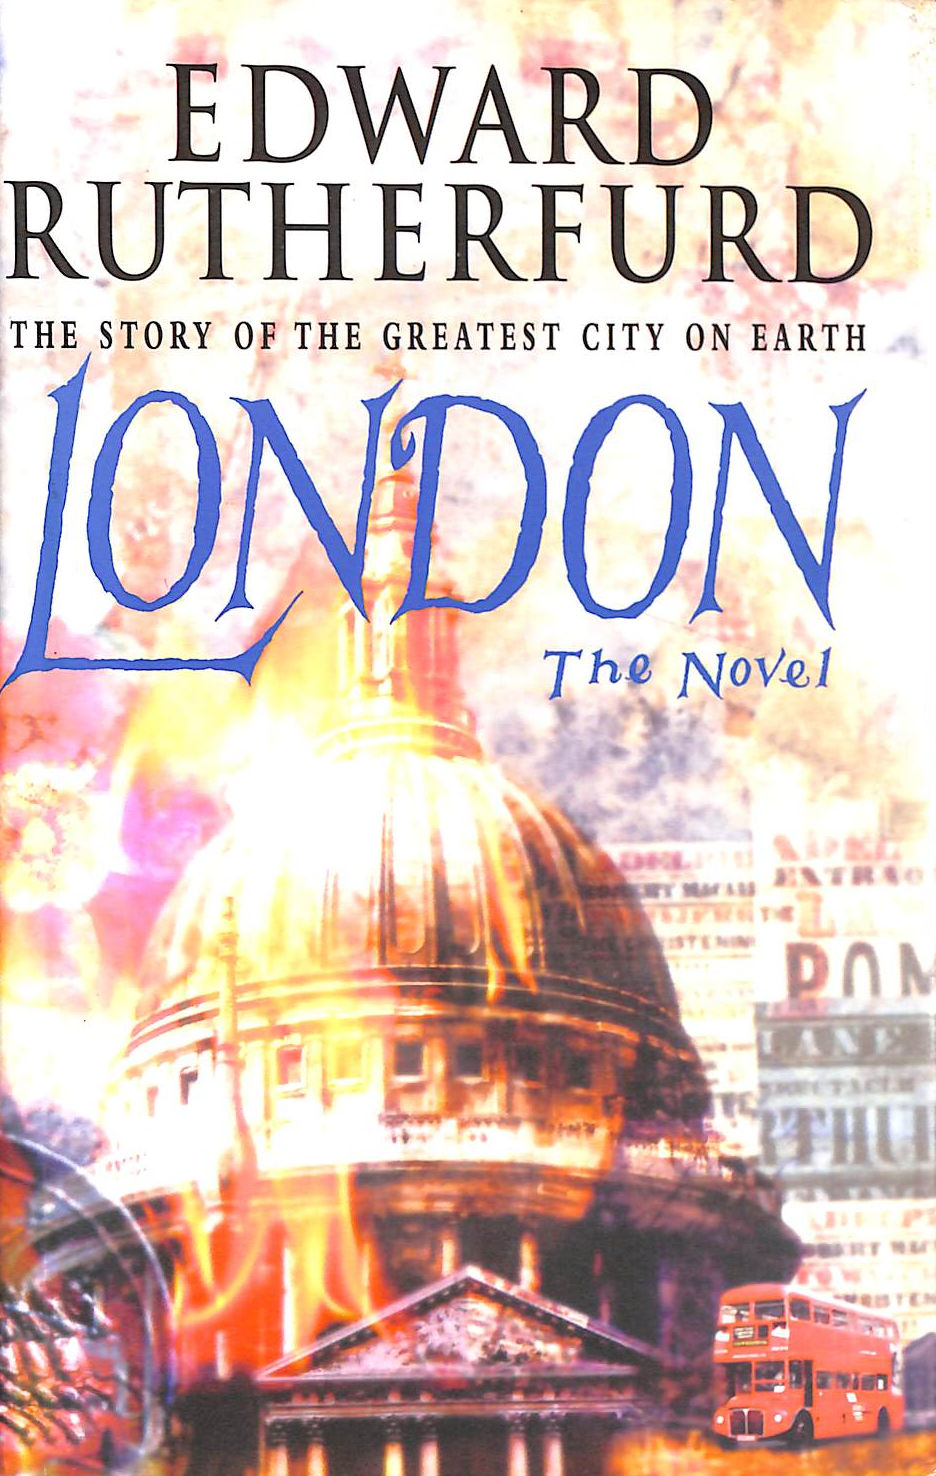 Image for The Story of The Greatest City on Earth LONDON The Novel